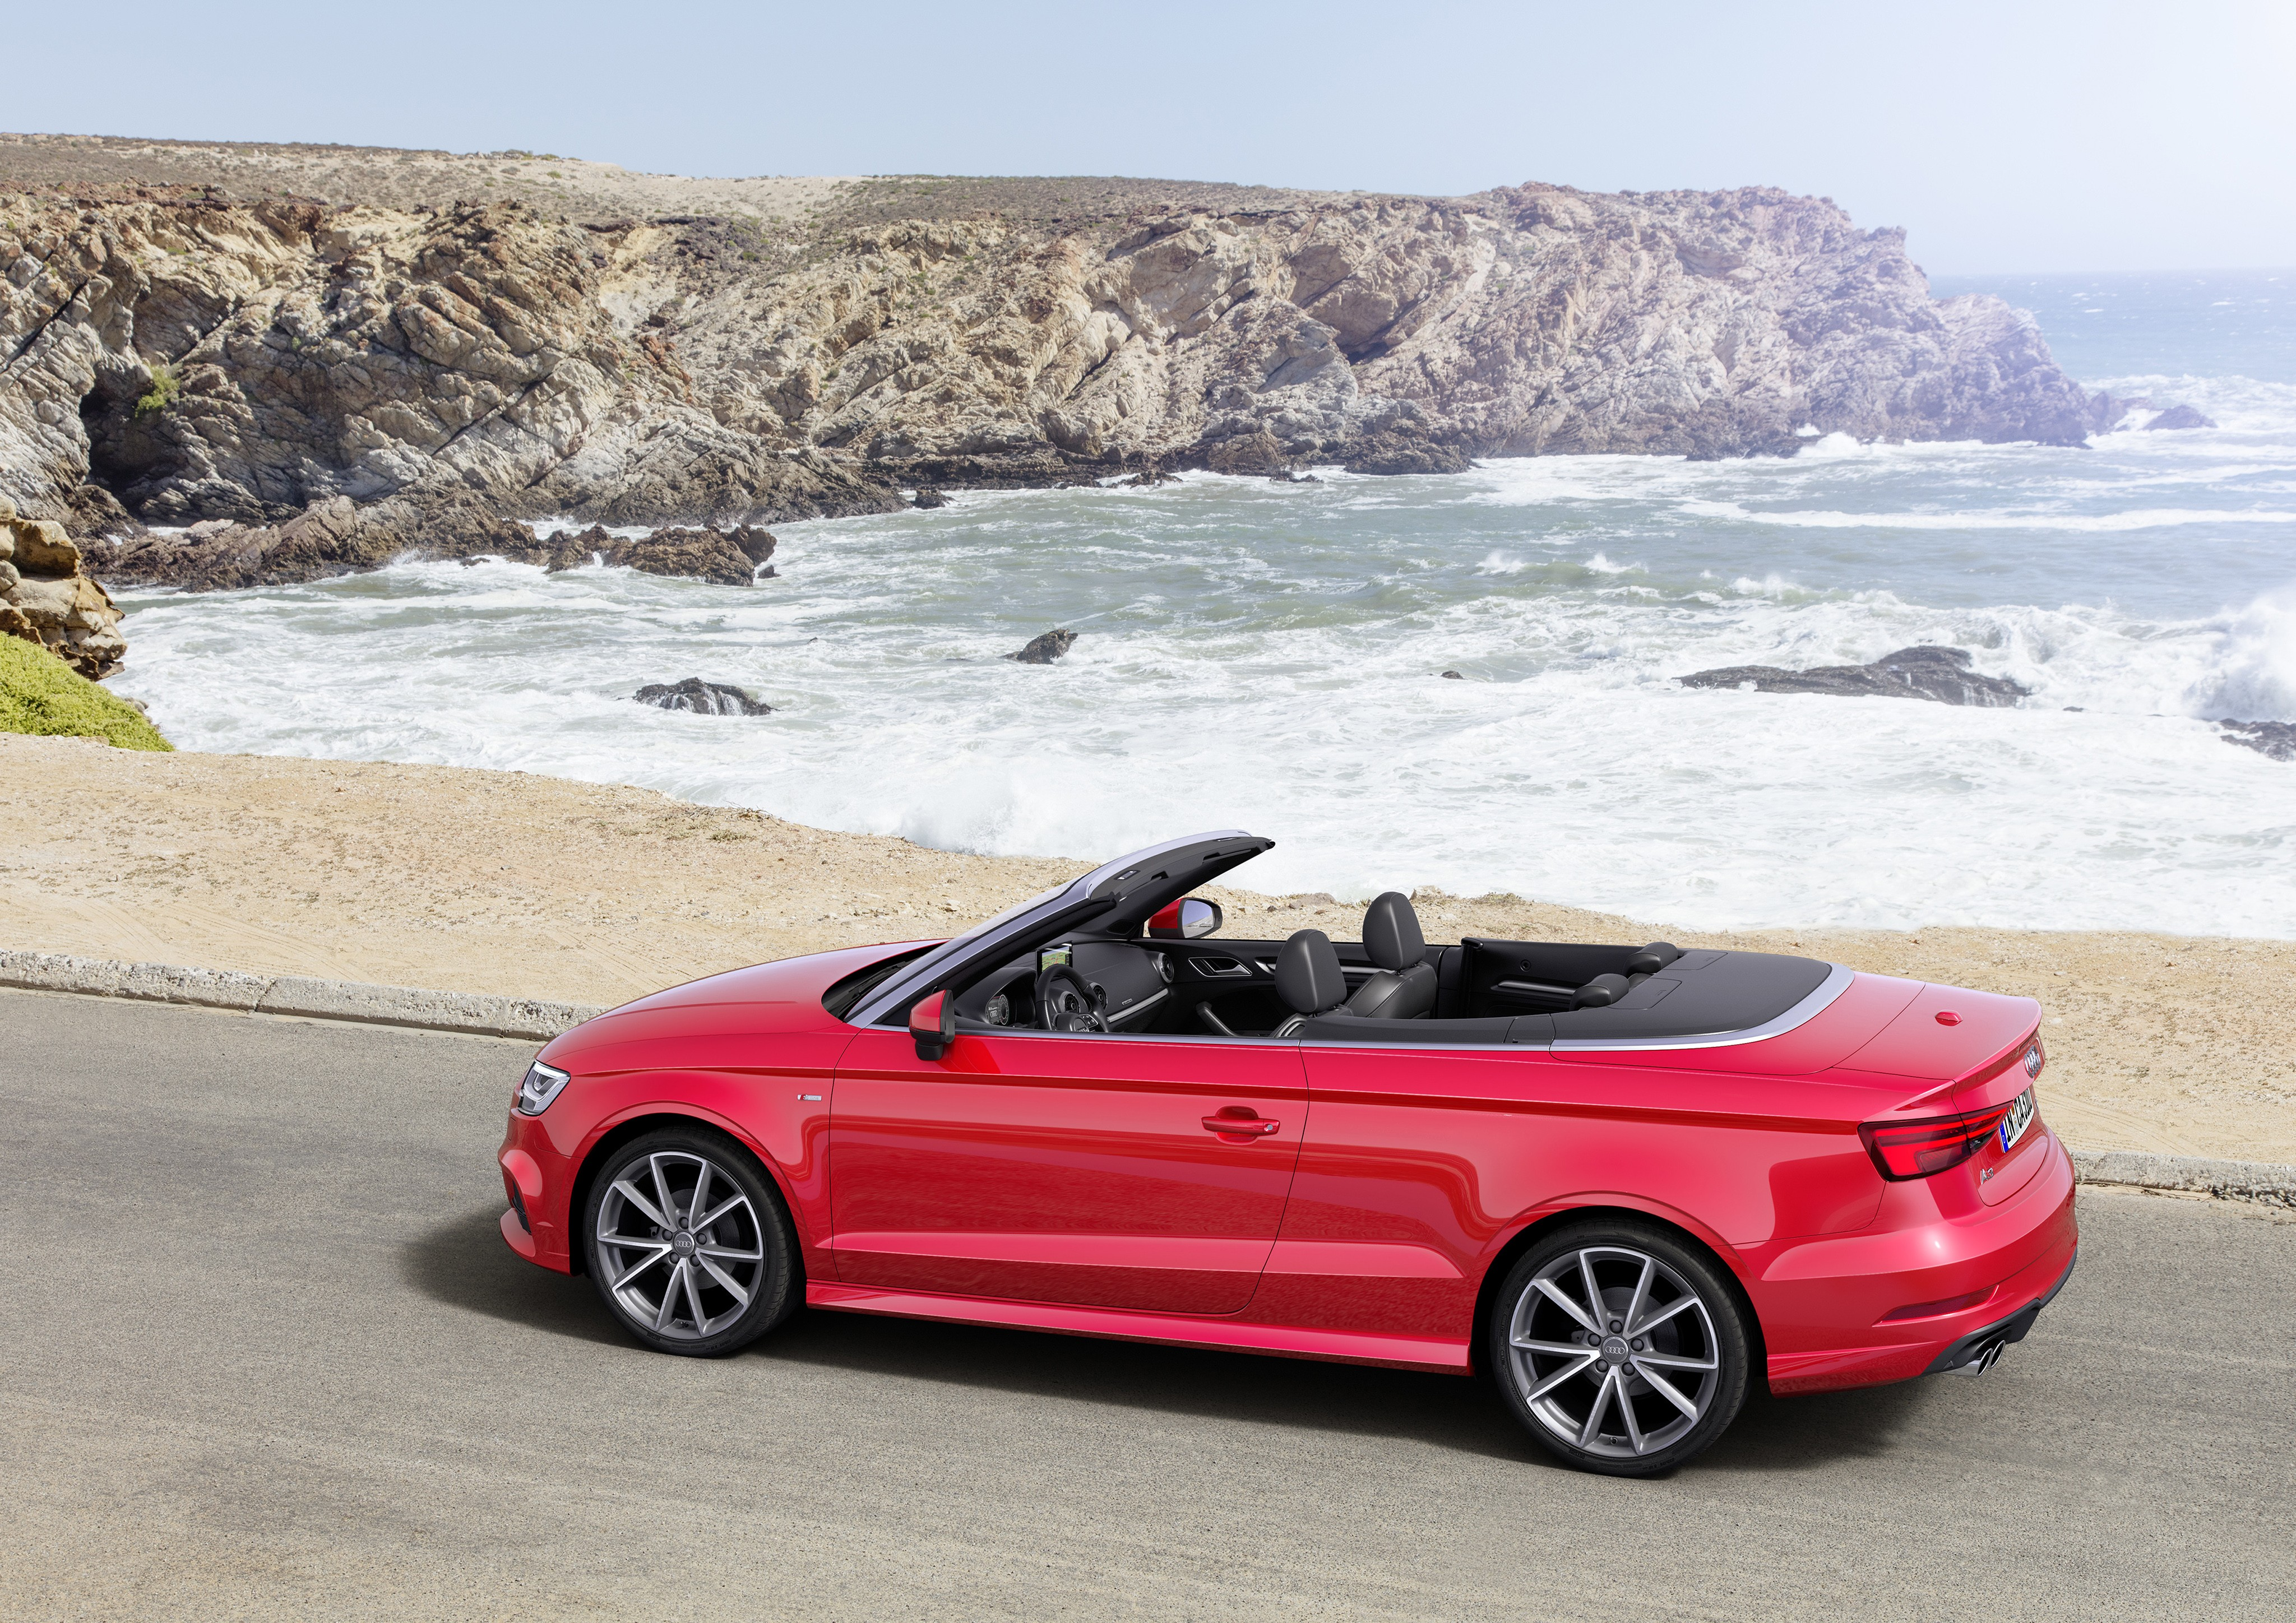 wallpaper audi a3 cabriolet red cars bikes 10262. Black Bedroom Furniture Sets. Home Design Ideas